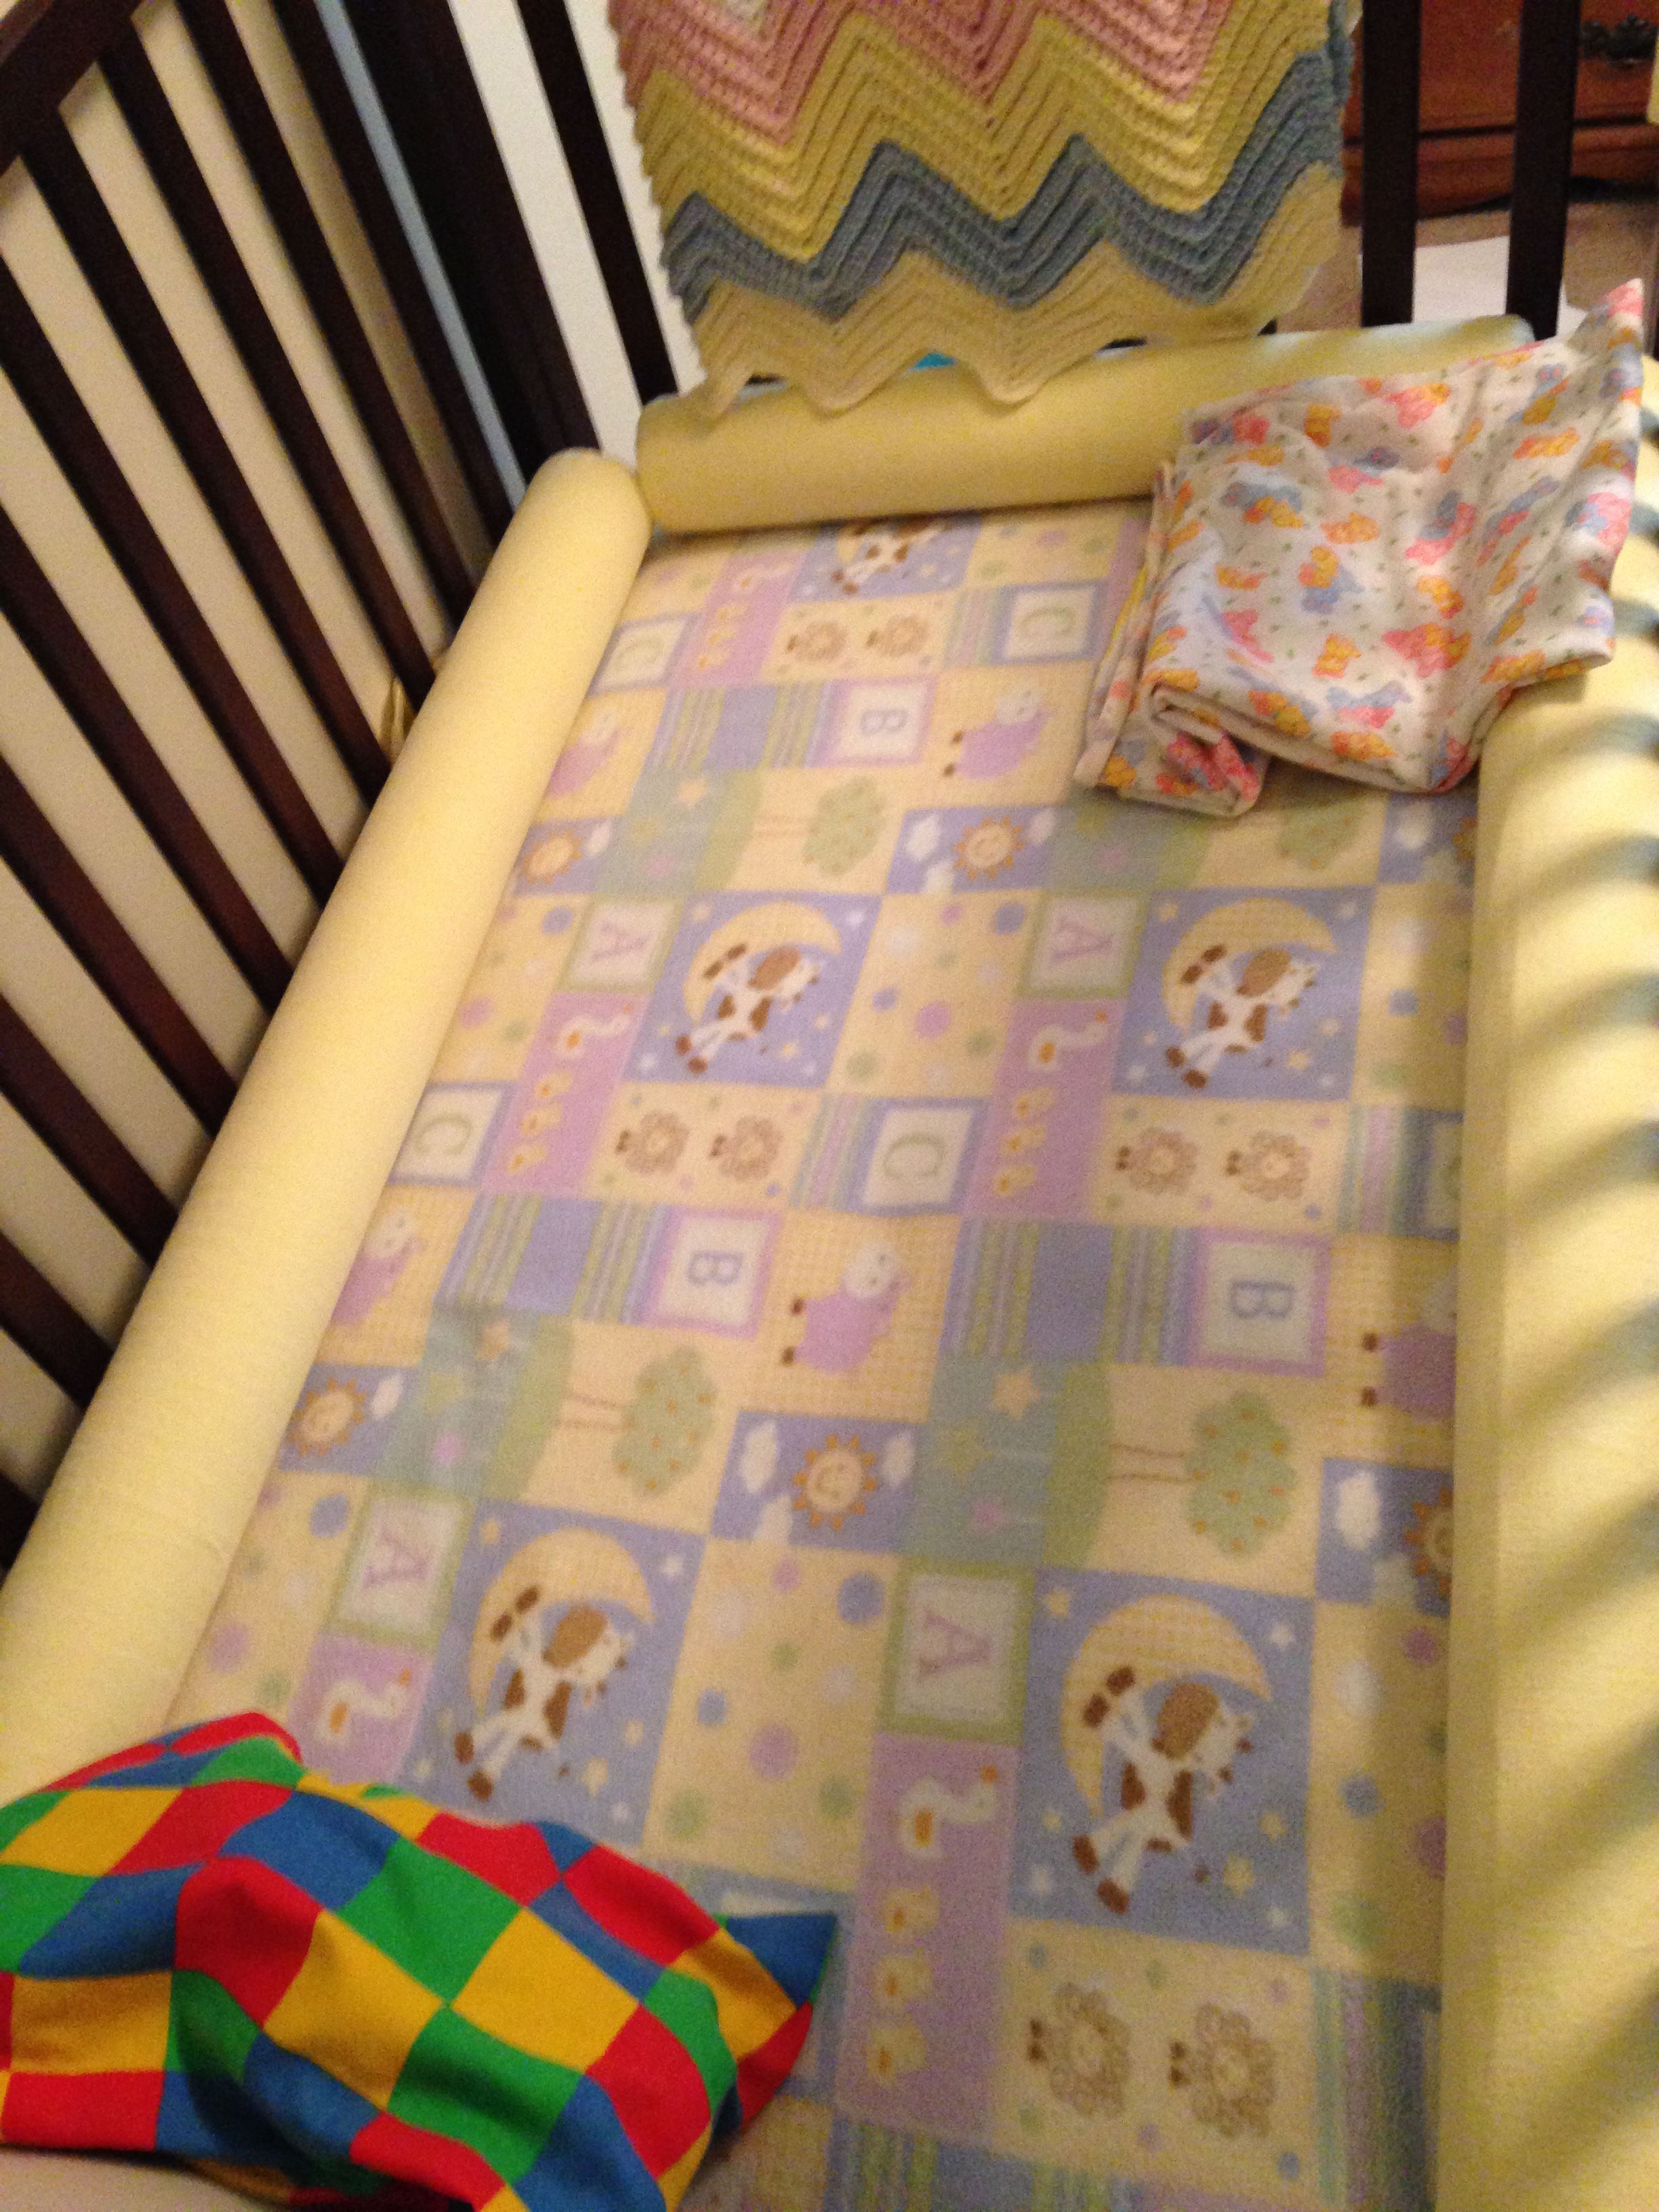 Top Pool noodles to crib bumpers: removable flannel covers with